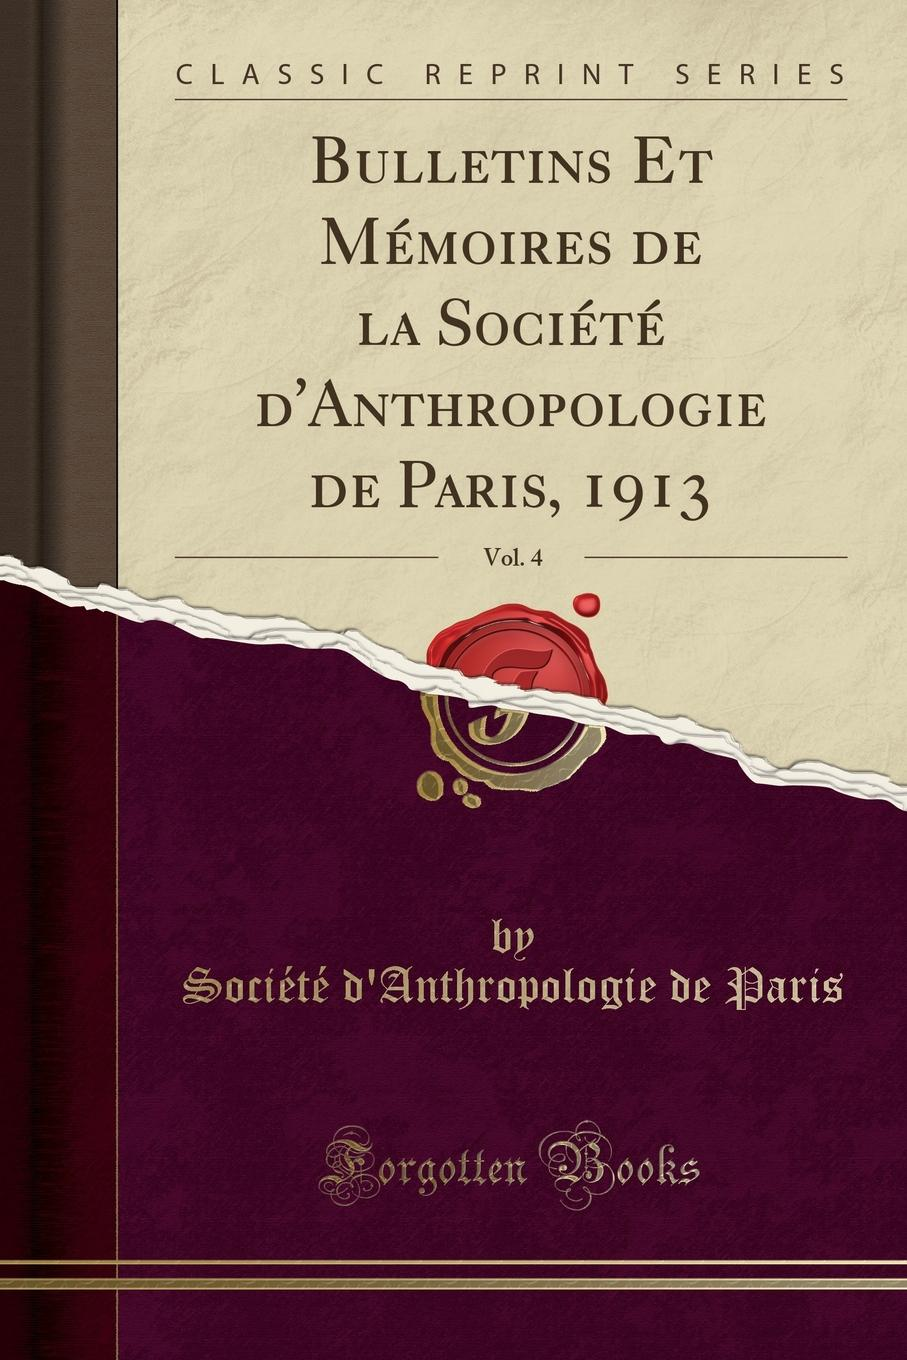 Société d'Anthropologie de Paris Bulletins Et Memoires de la Societe d.Anthropologie de Paris, 1913, Vol. 4 (Classic Reprint)